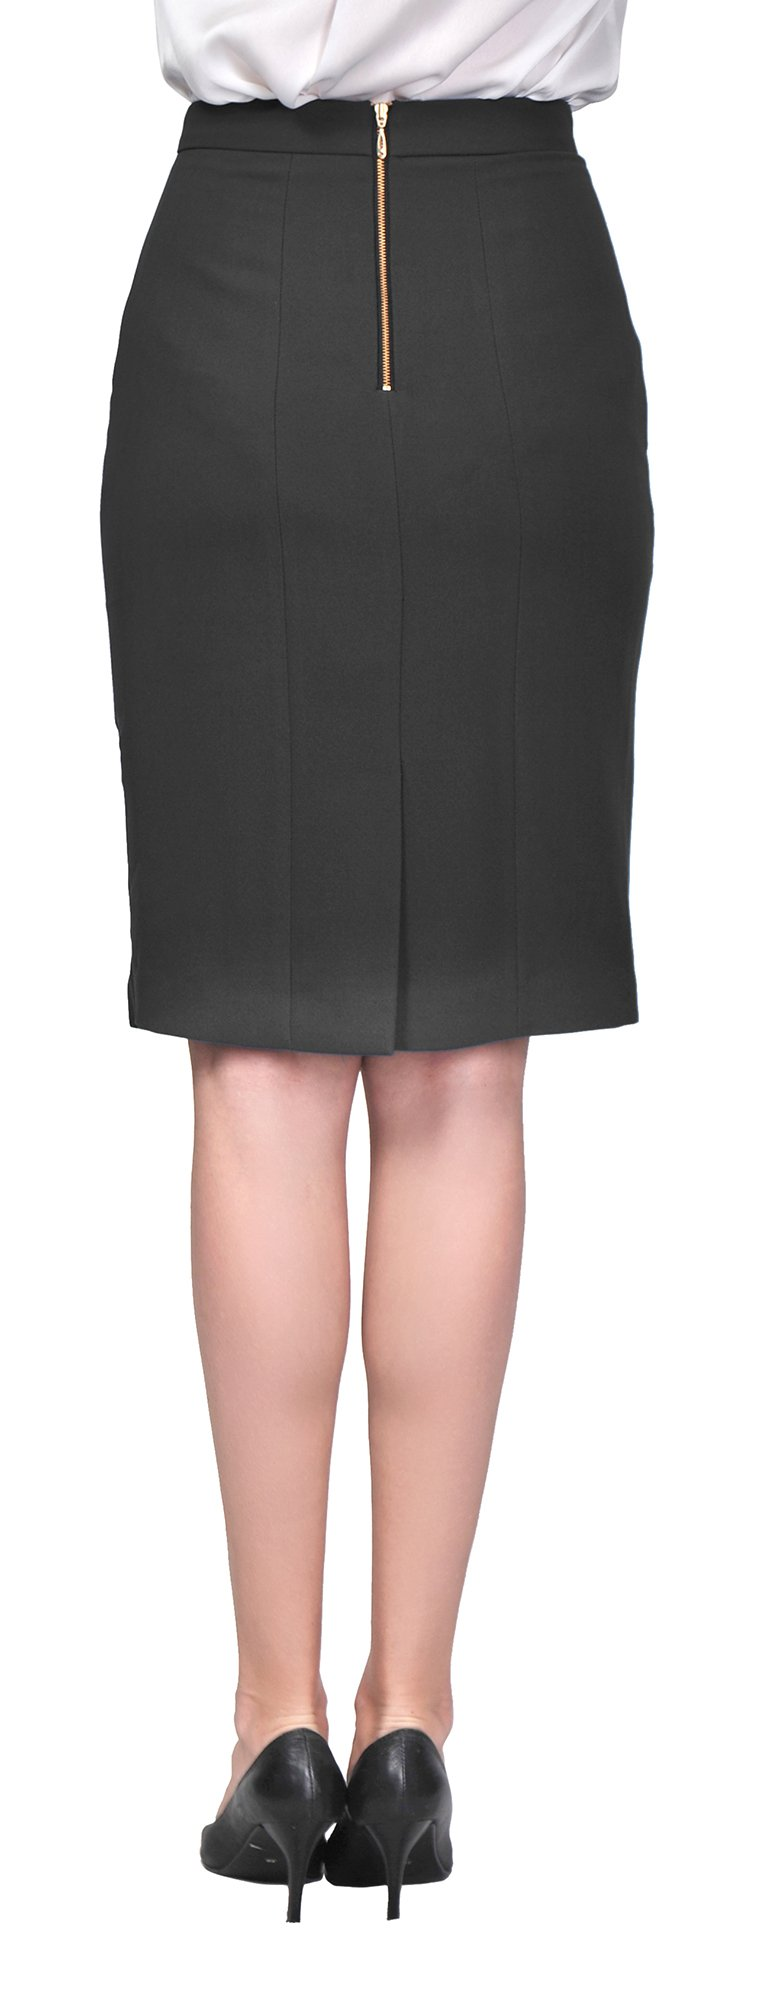 Marycrafts Women's Lined Pencil Skirt 4 Work Business Office 2 black by Marycrafts (Image #5)